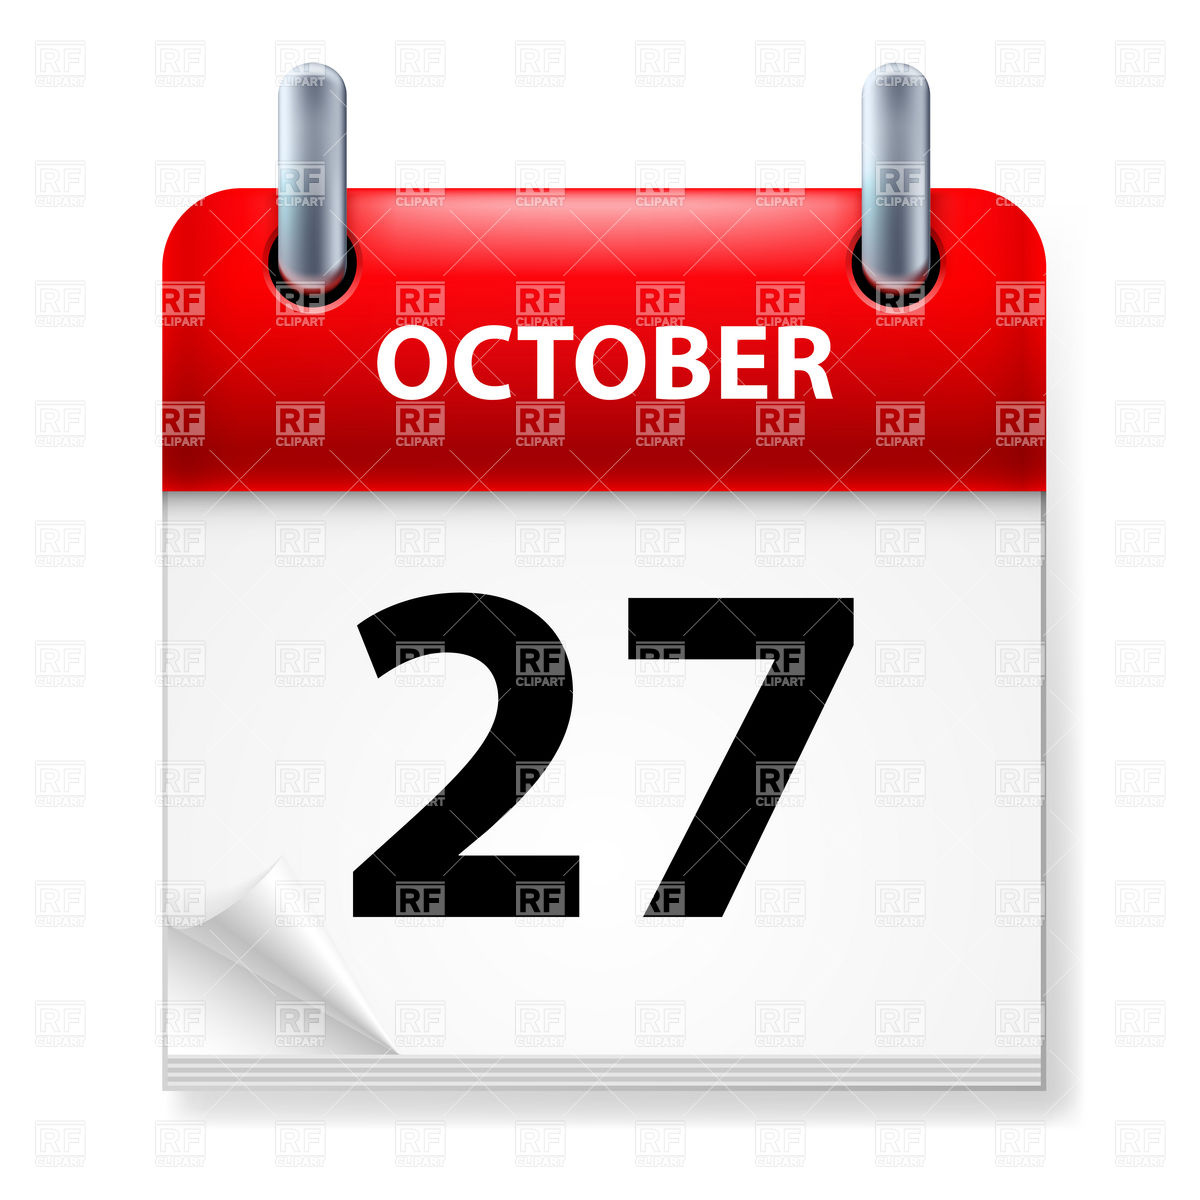 Calendar october clipart png transparent library October Calendar Clipart - Clipart Kid png transparent library